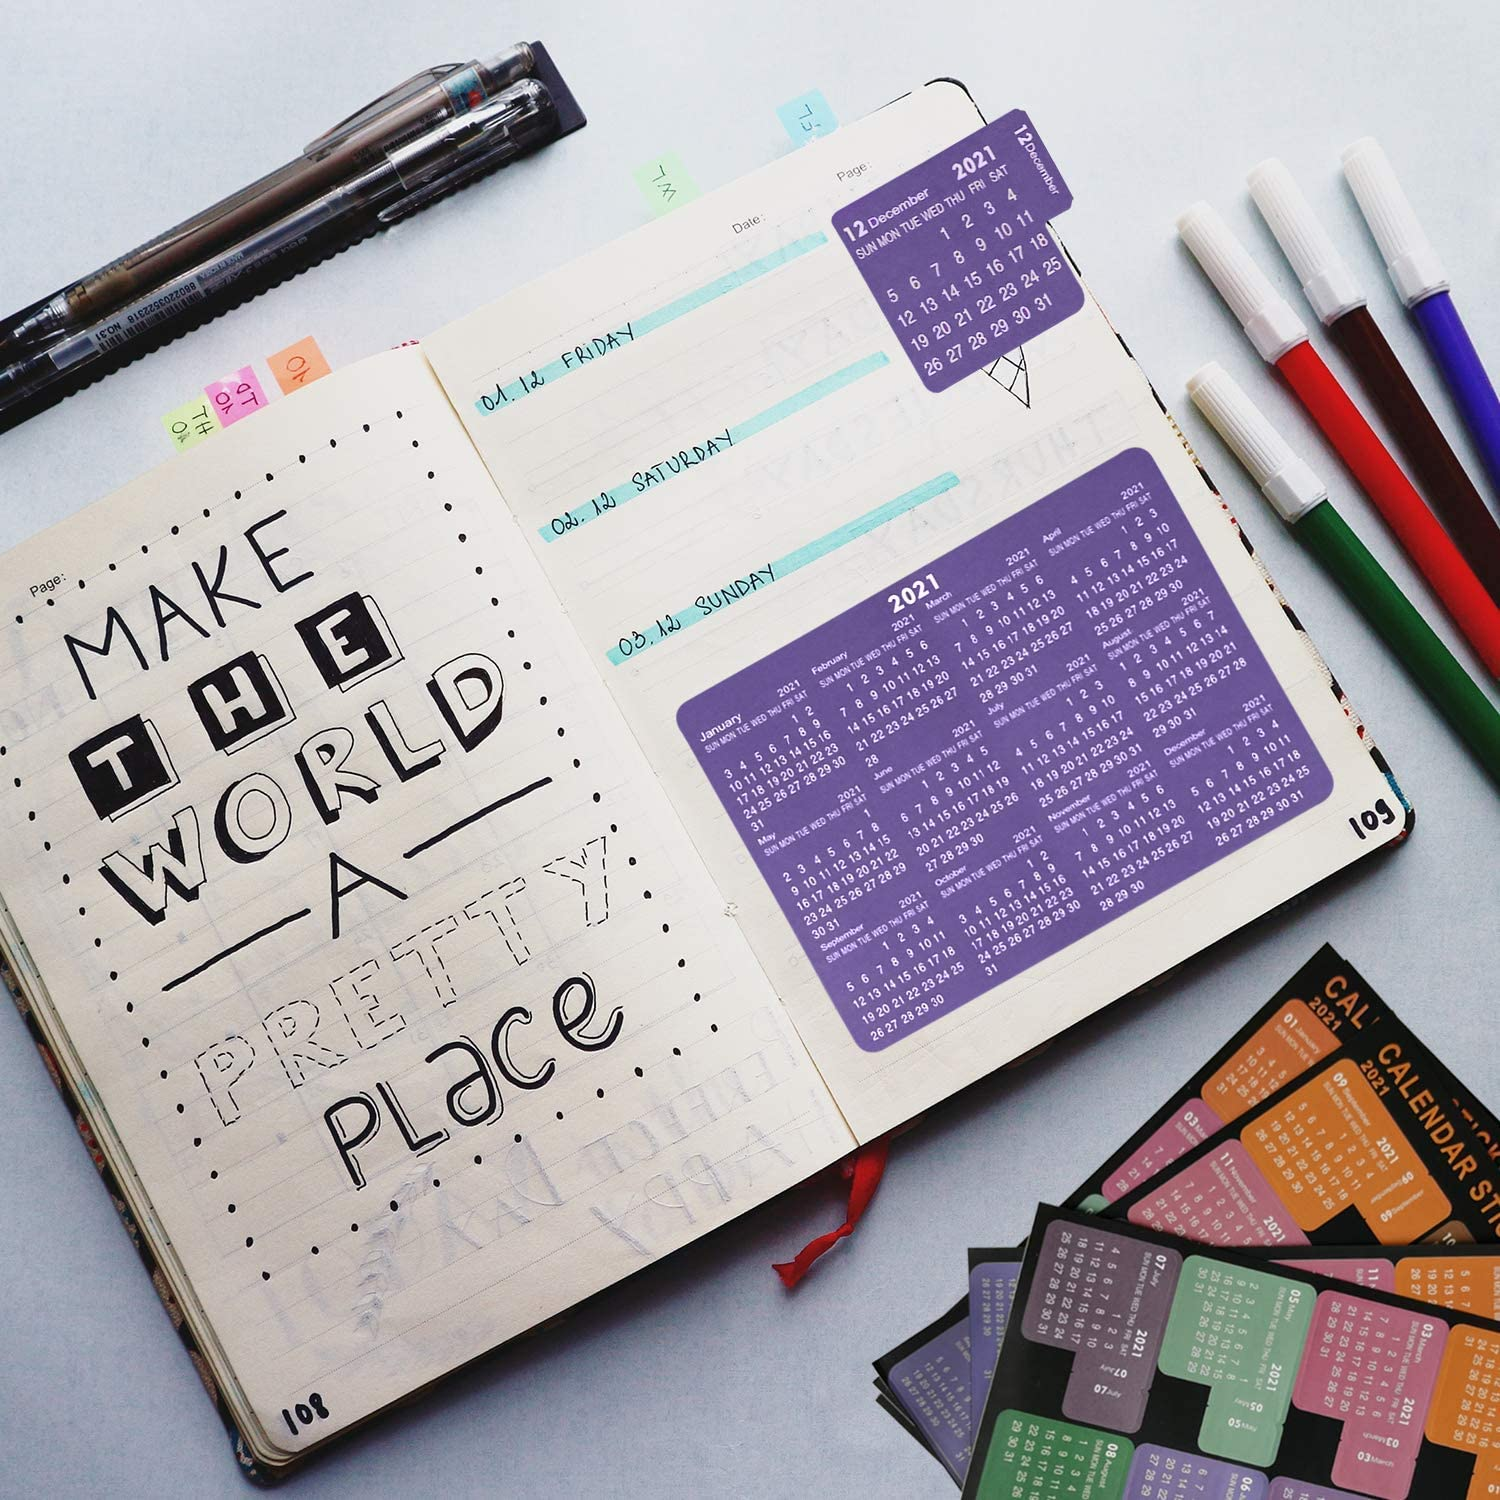 Kingovalley 2021 Calendar Planner Stickers 12 Monthly Planner Adhesive Tabs Divider Index Tabs for Bullet Journal Notebook Perfect for Home Office School Organizing /& Planning 12 Sheets, 72Tabs